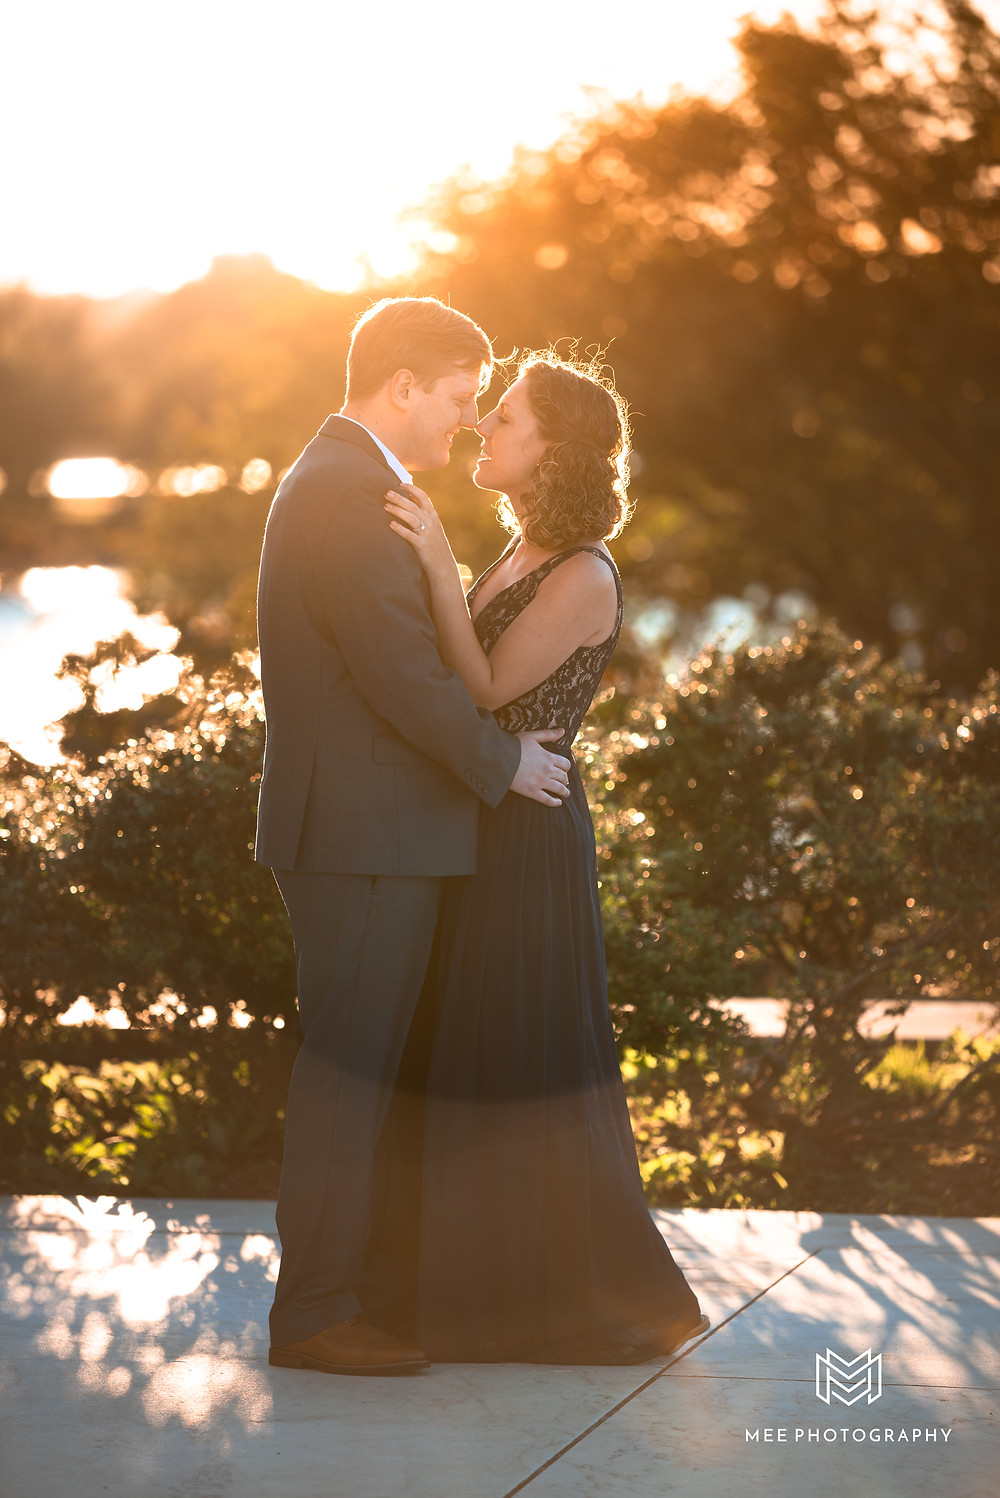 District of Columbia sunset engagement session with the couple dressed in formal attire